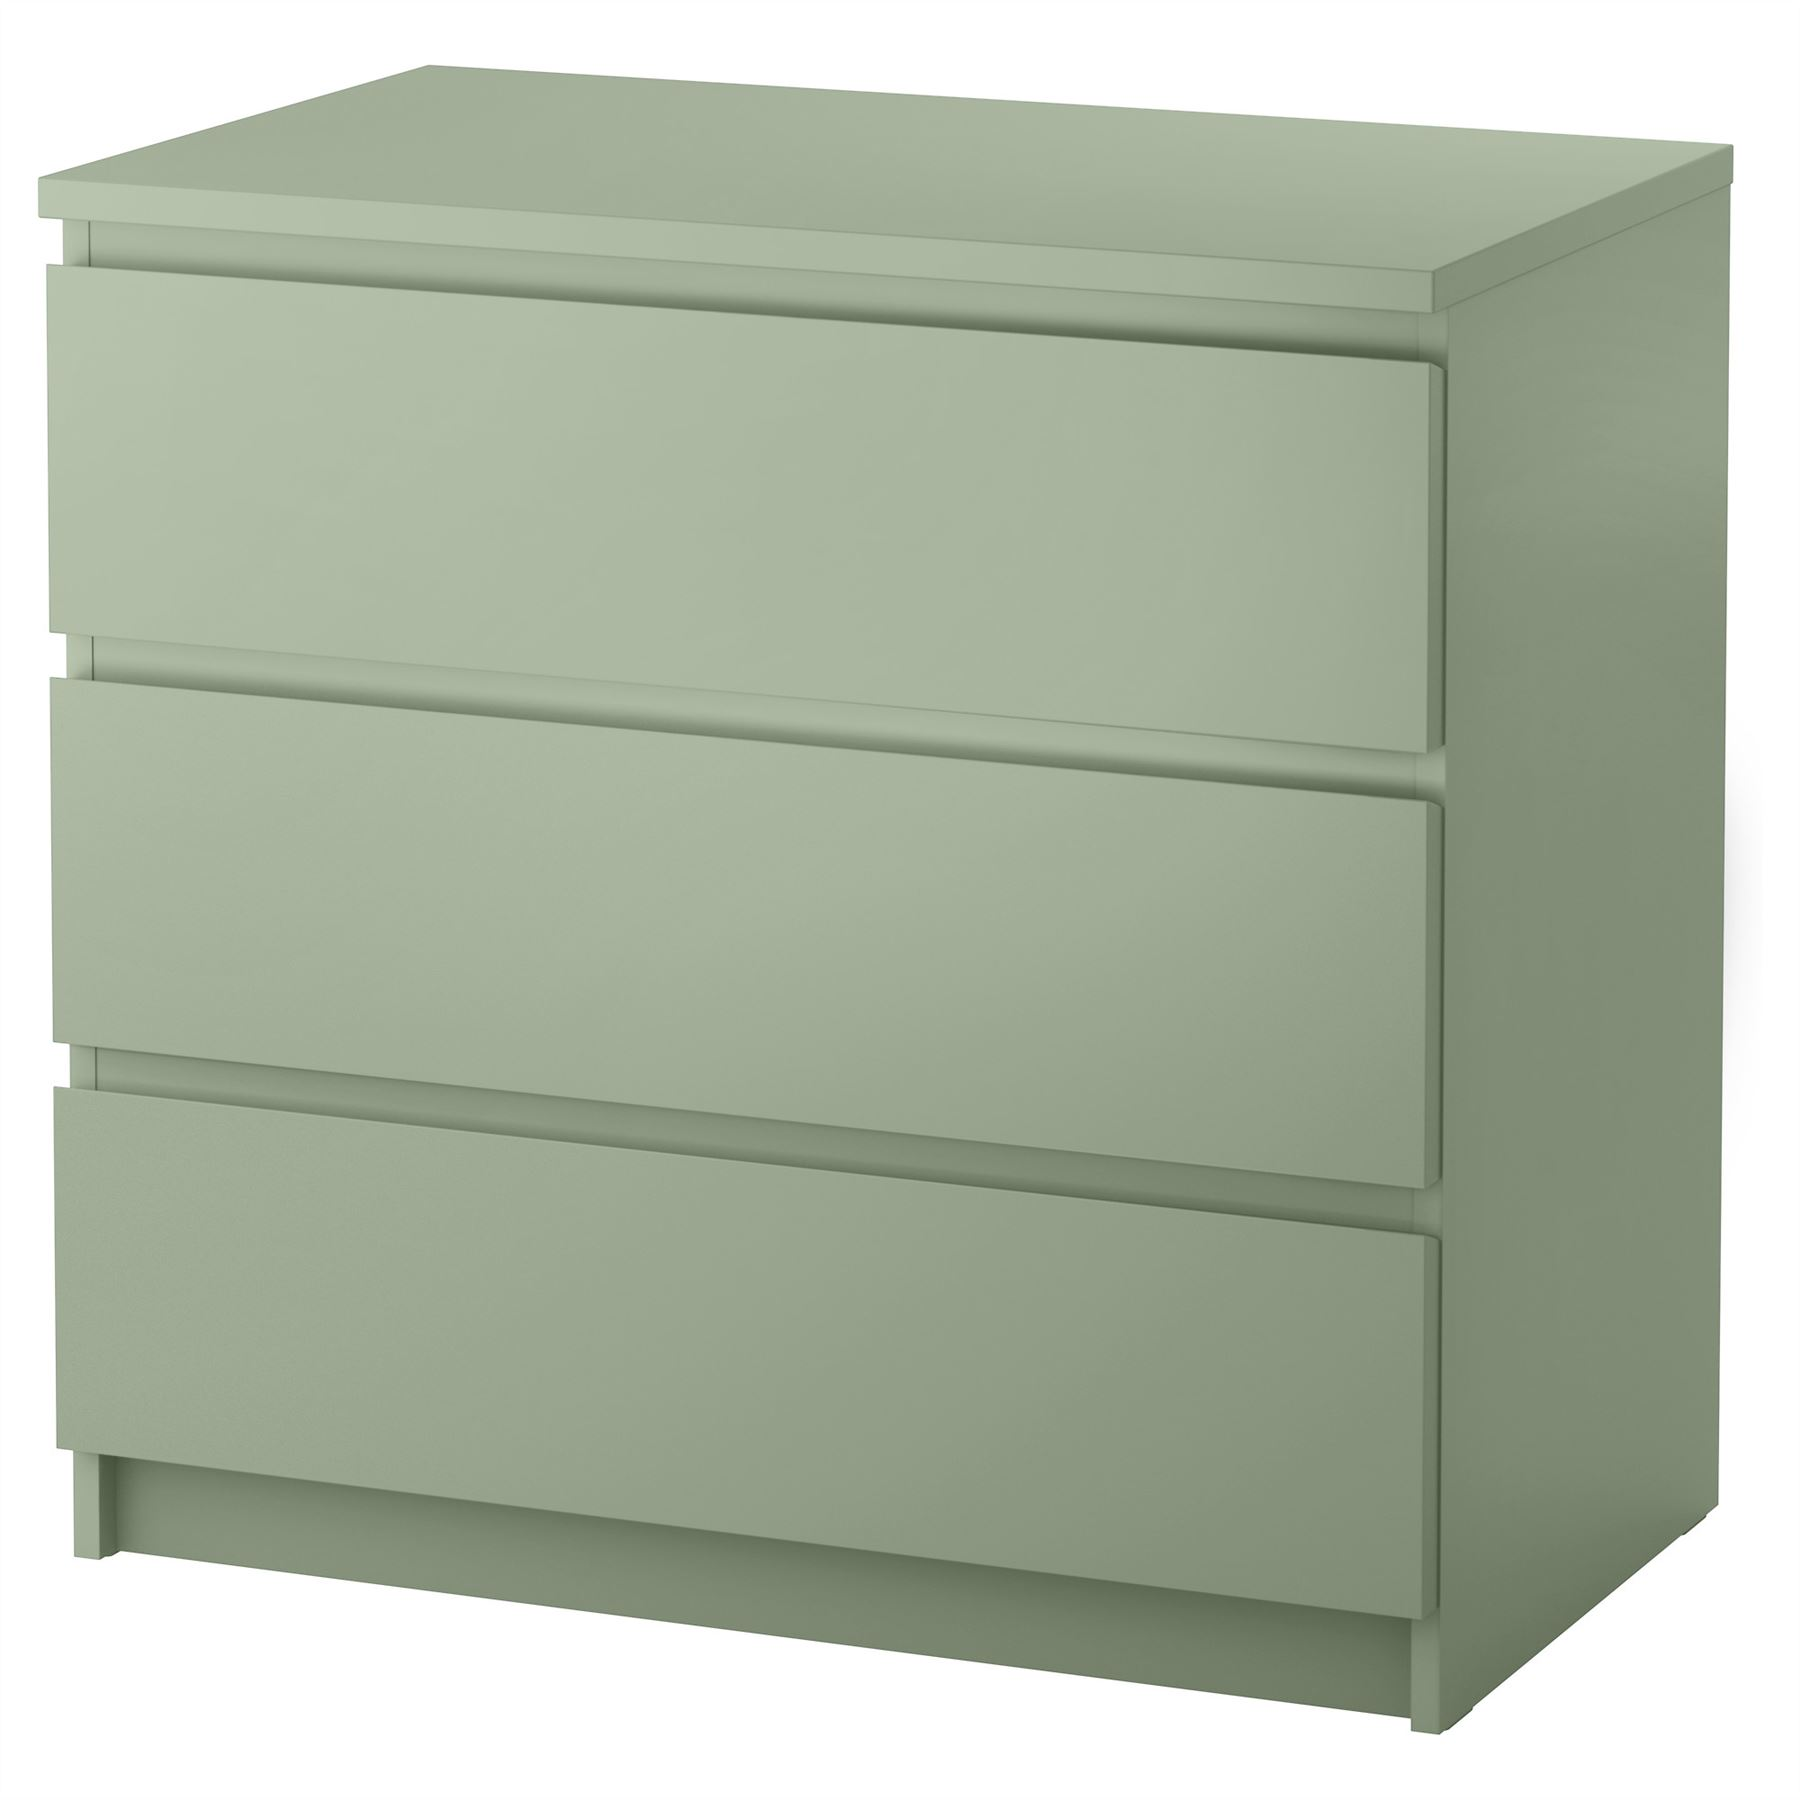 Ikea Bedroom Furniture Sets With Chest Of Drawers Ebay # Ikea Meuble Tv En Coin